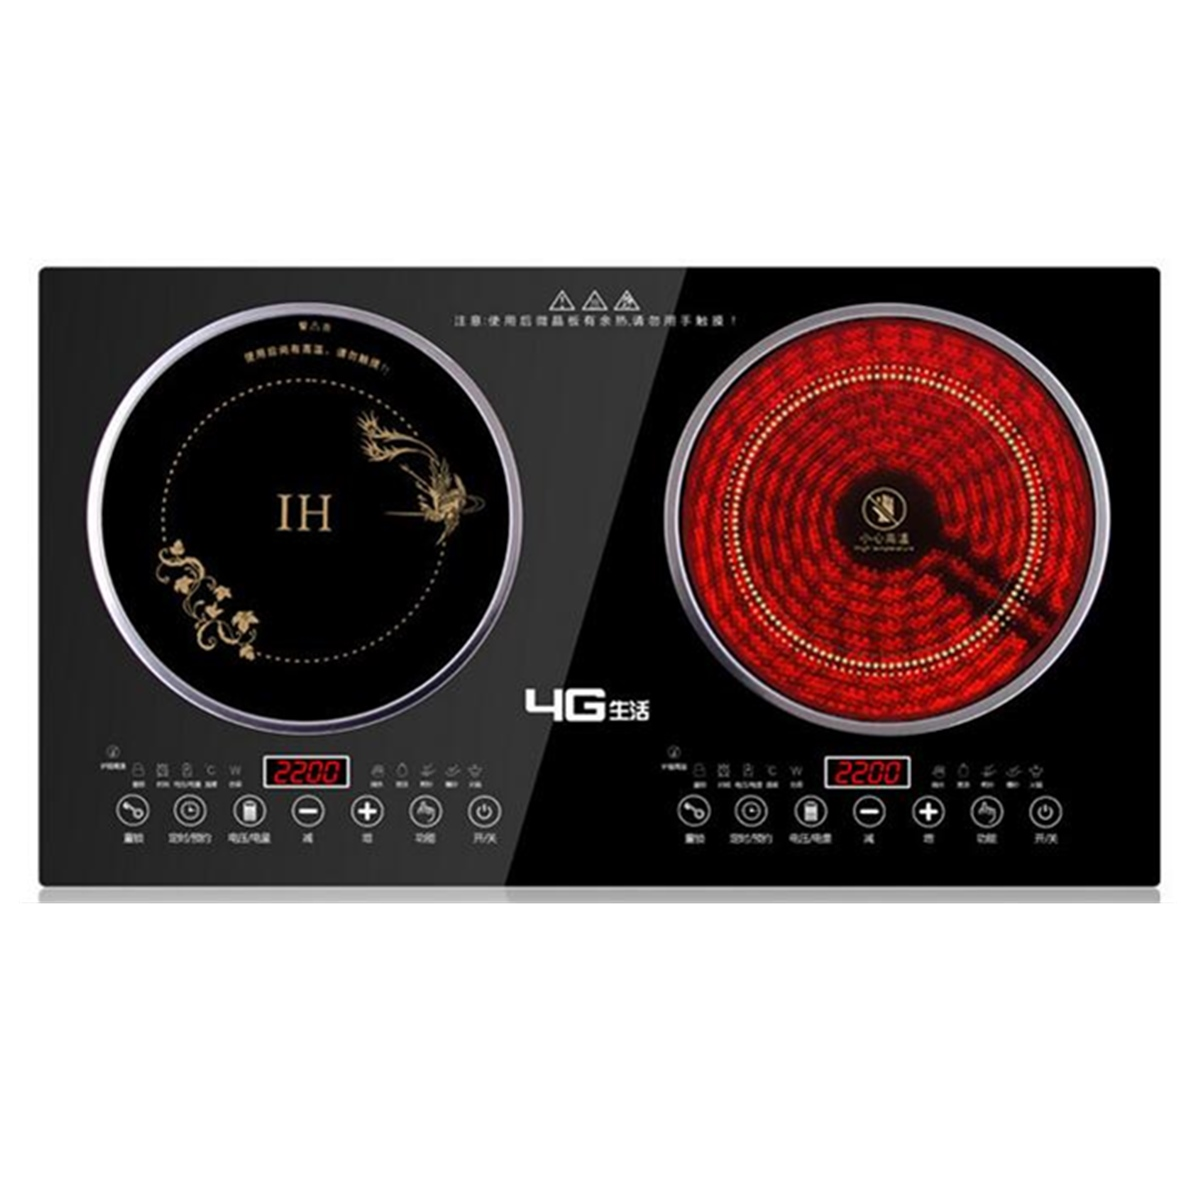 New 2200W  Dual Induction Cooker/Induction Cooker+Electric Ceramic Cooker Double Burner Ceramic Stove With 2 CookersNew 2200W  Dual Induction Cooker/Induction Cooker+Electric Ceramic Cooker Double Burner Ceramic Stove With 2 Cookers